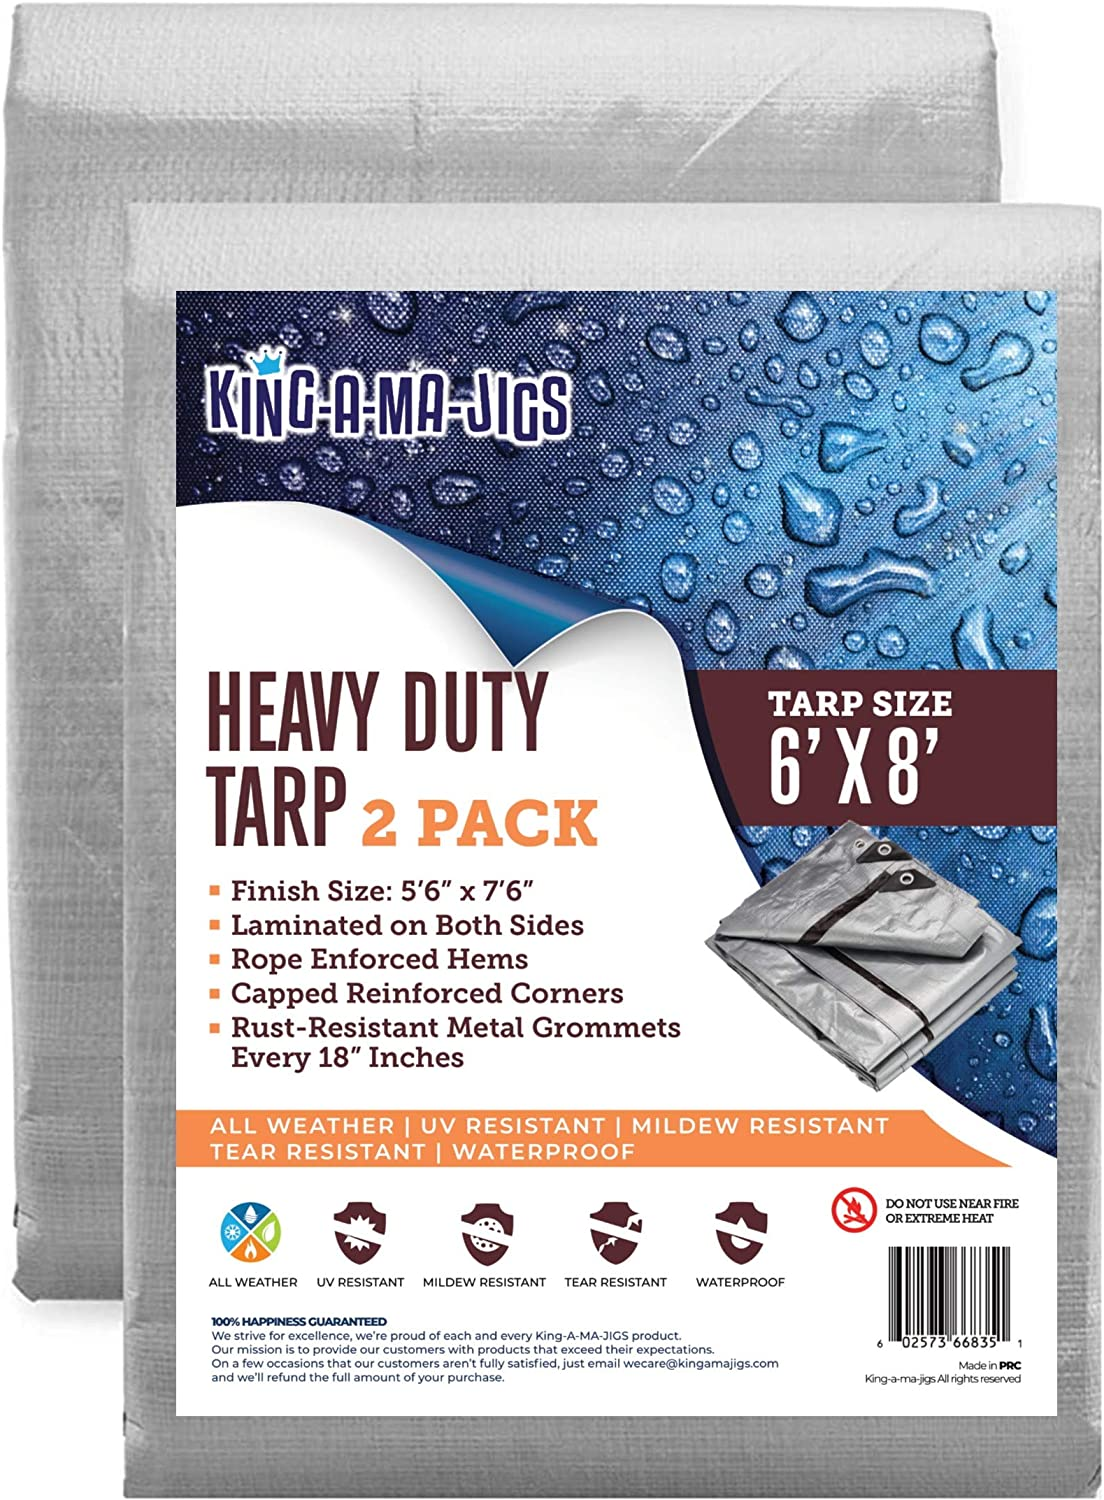 (2 Pack) 6x8 Heavy Duty Tarp, Waterproof Plastic Poly 10 Mil Thick Tarpaulin with Metal Grommets Every 18 Inches - for Roof, Camping, Outdoor, Patio. Rain or Sun (Reversible and Silver)